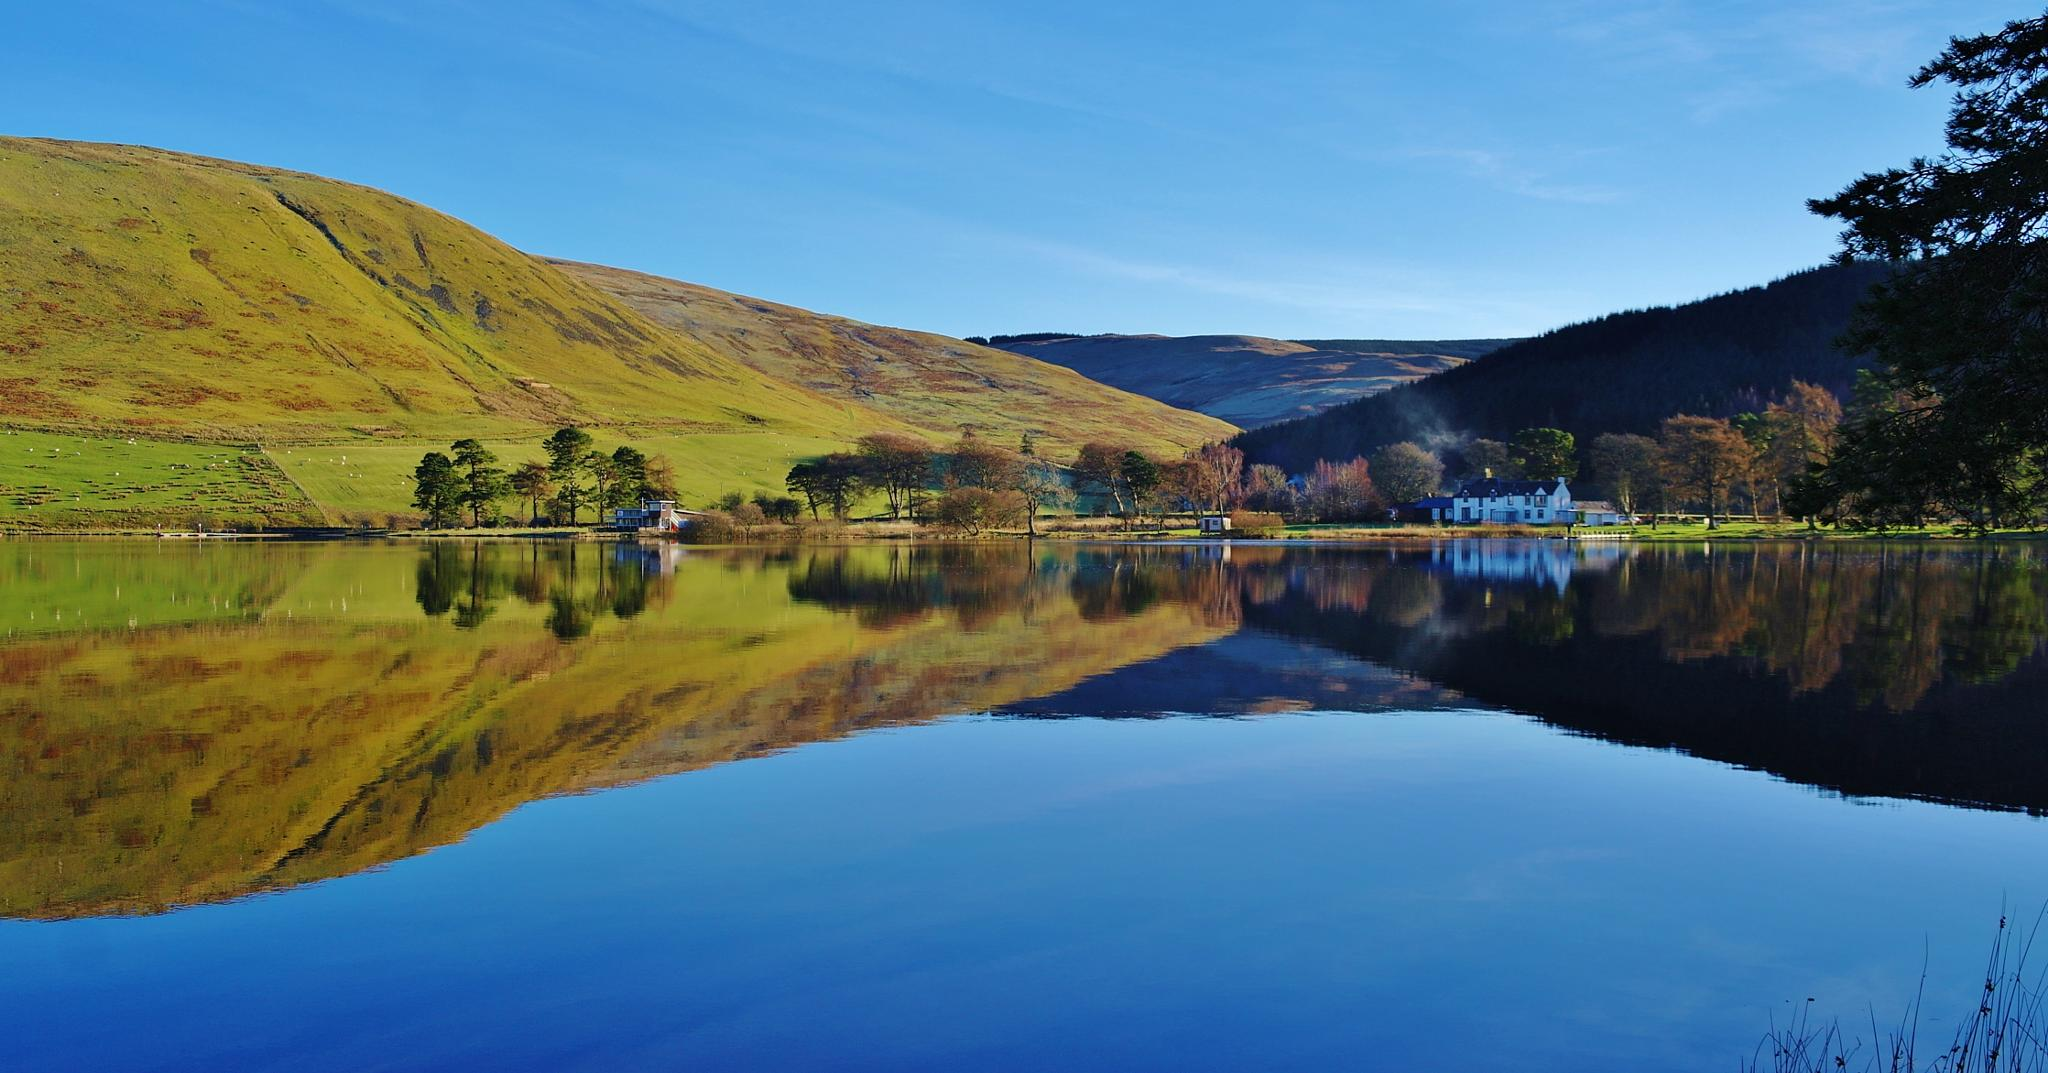 St Mary's Loch, Moffat by georgeporteous